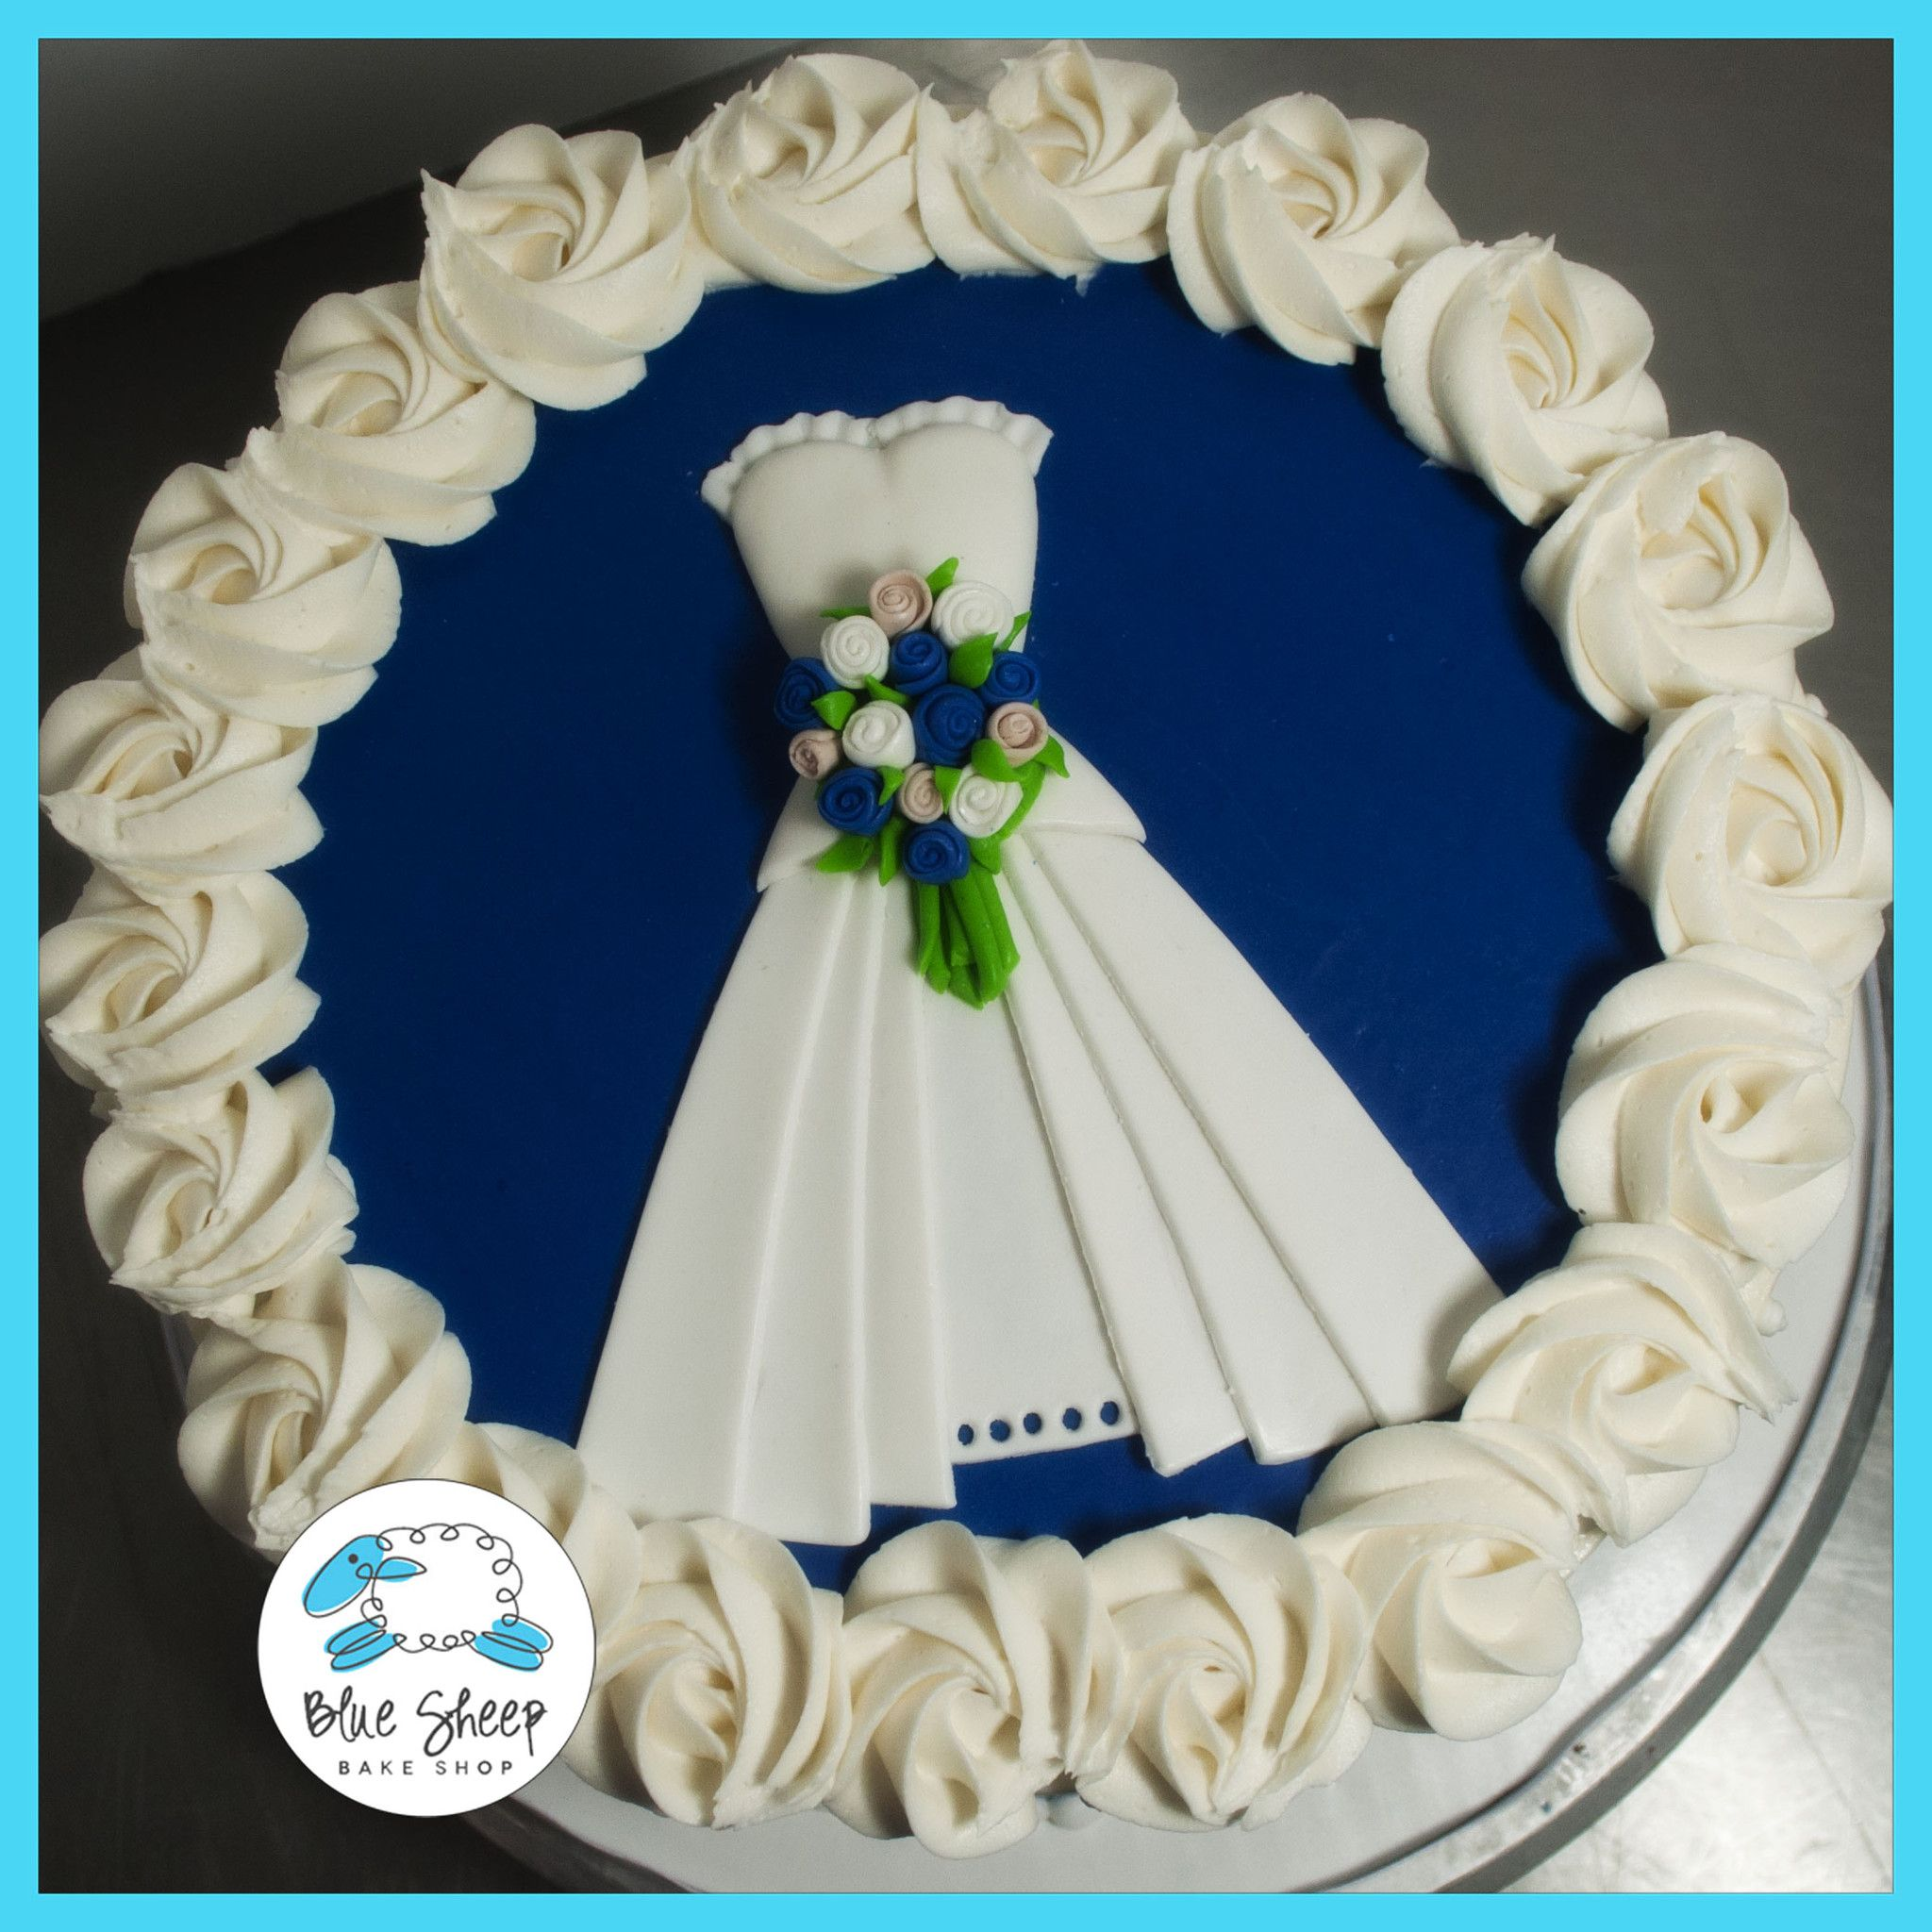 Wedding decorations royal blue  fondant wedding dress cake topper nj  Bridal shower ideas